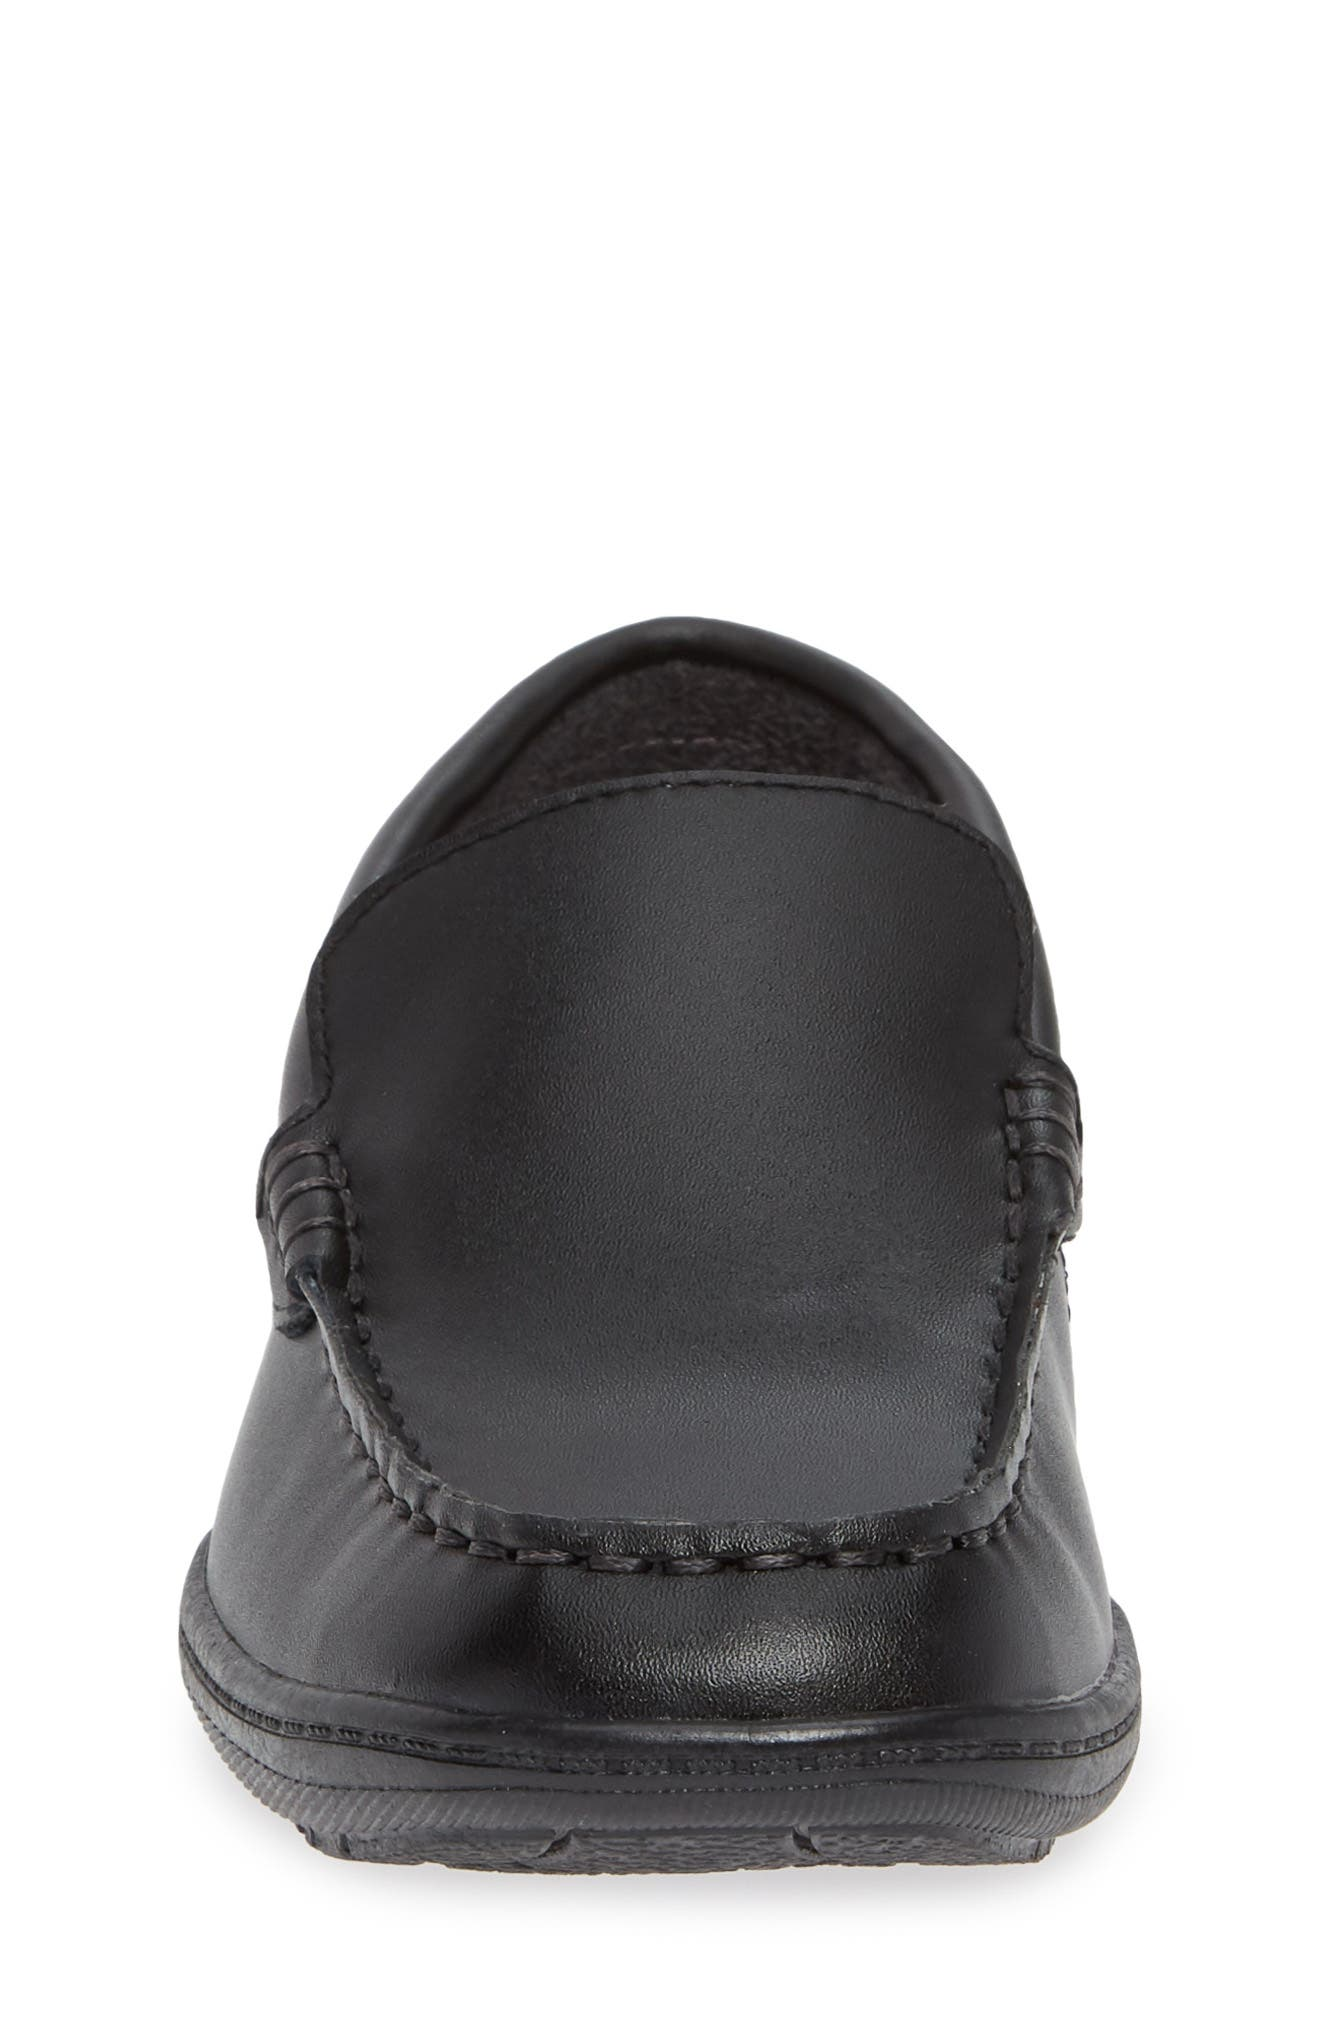 REACTION KENNETH COLE, Driving Dime Moccasin, Alternate thumbnail 4, color, DARK BLACK LEATHER